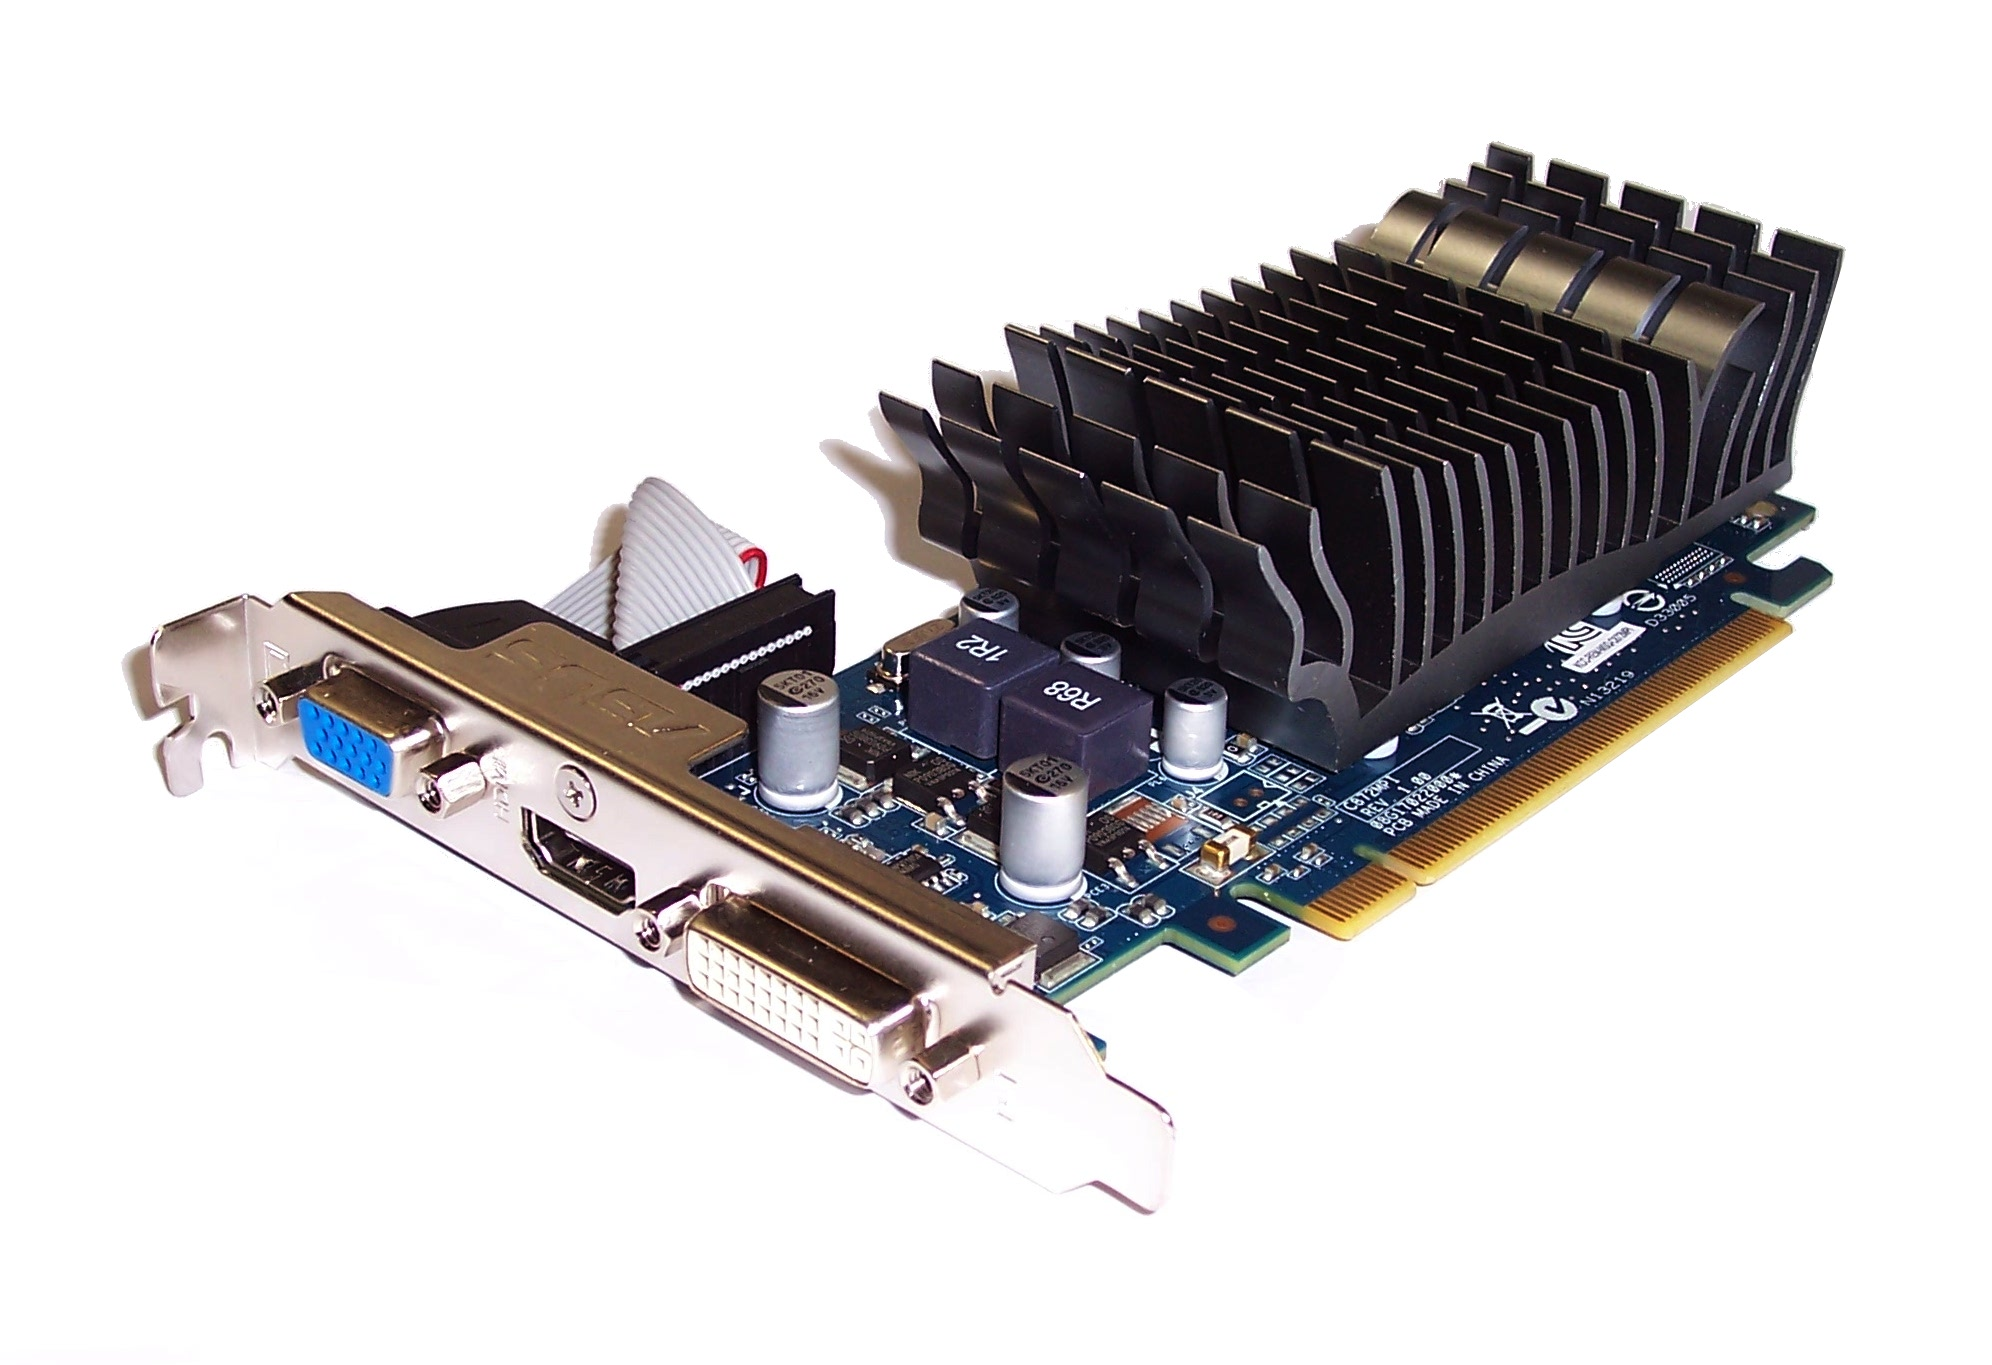 Asus 210-SL-TC1GD3-L GeForce 210 PCIe 1GB DDR3 DVI-I/HDMI/VGA Port Graphics Card